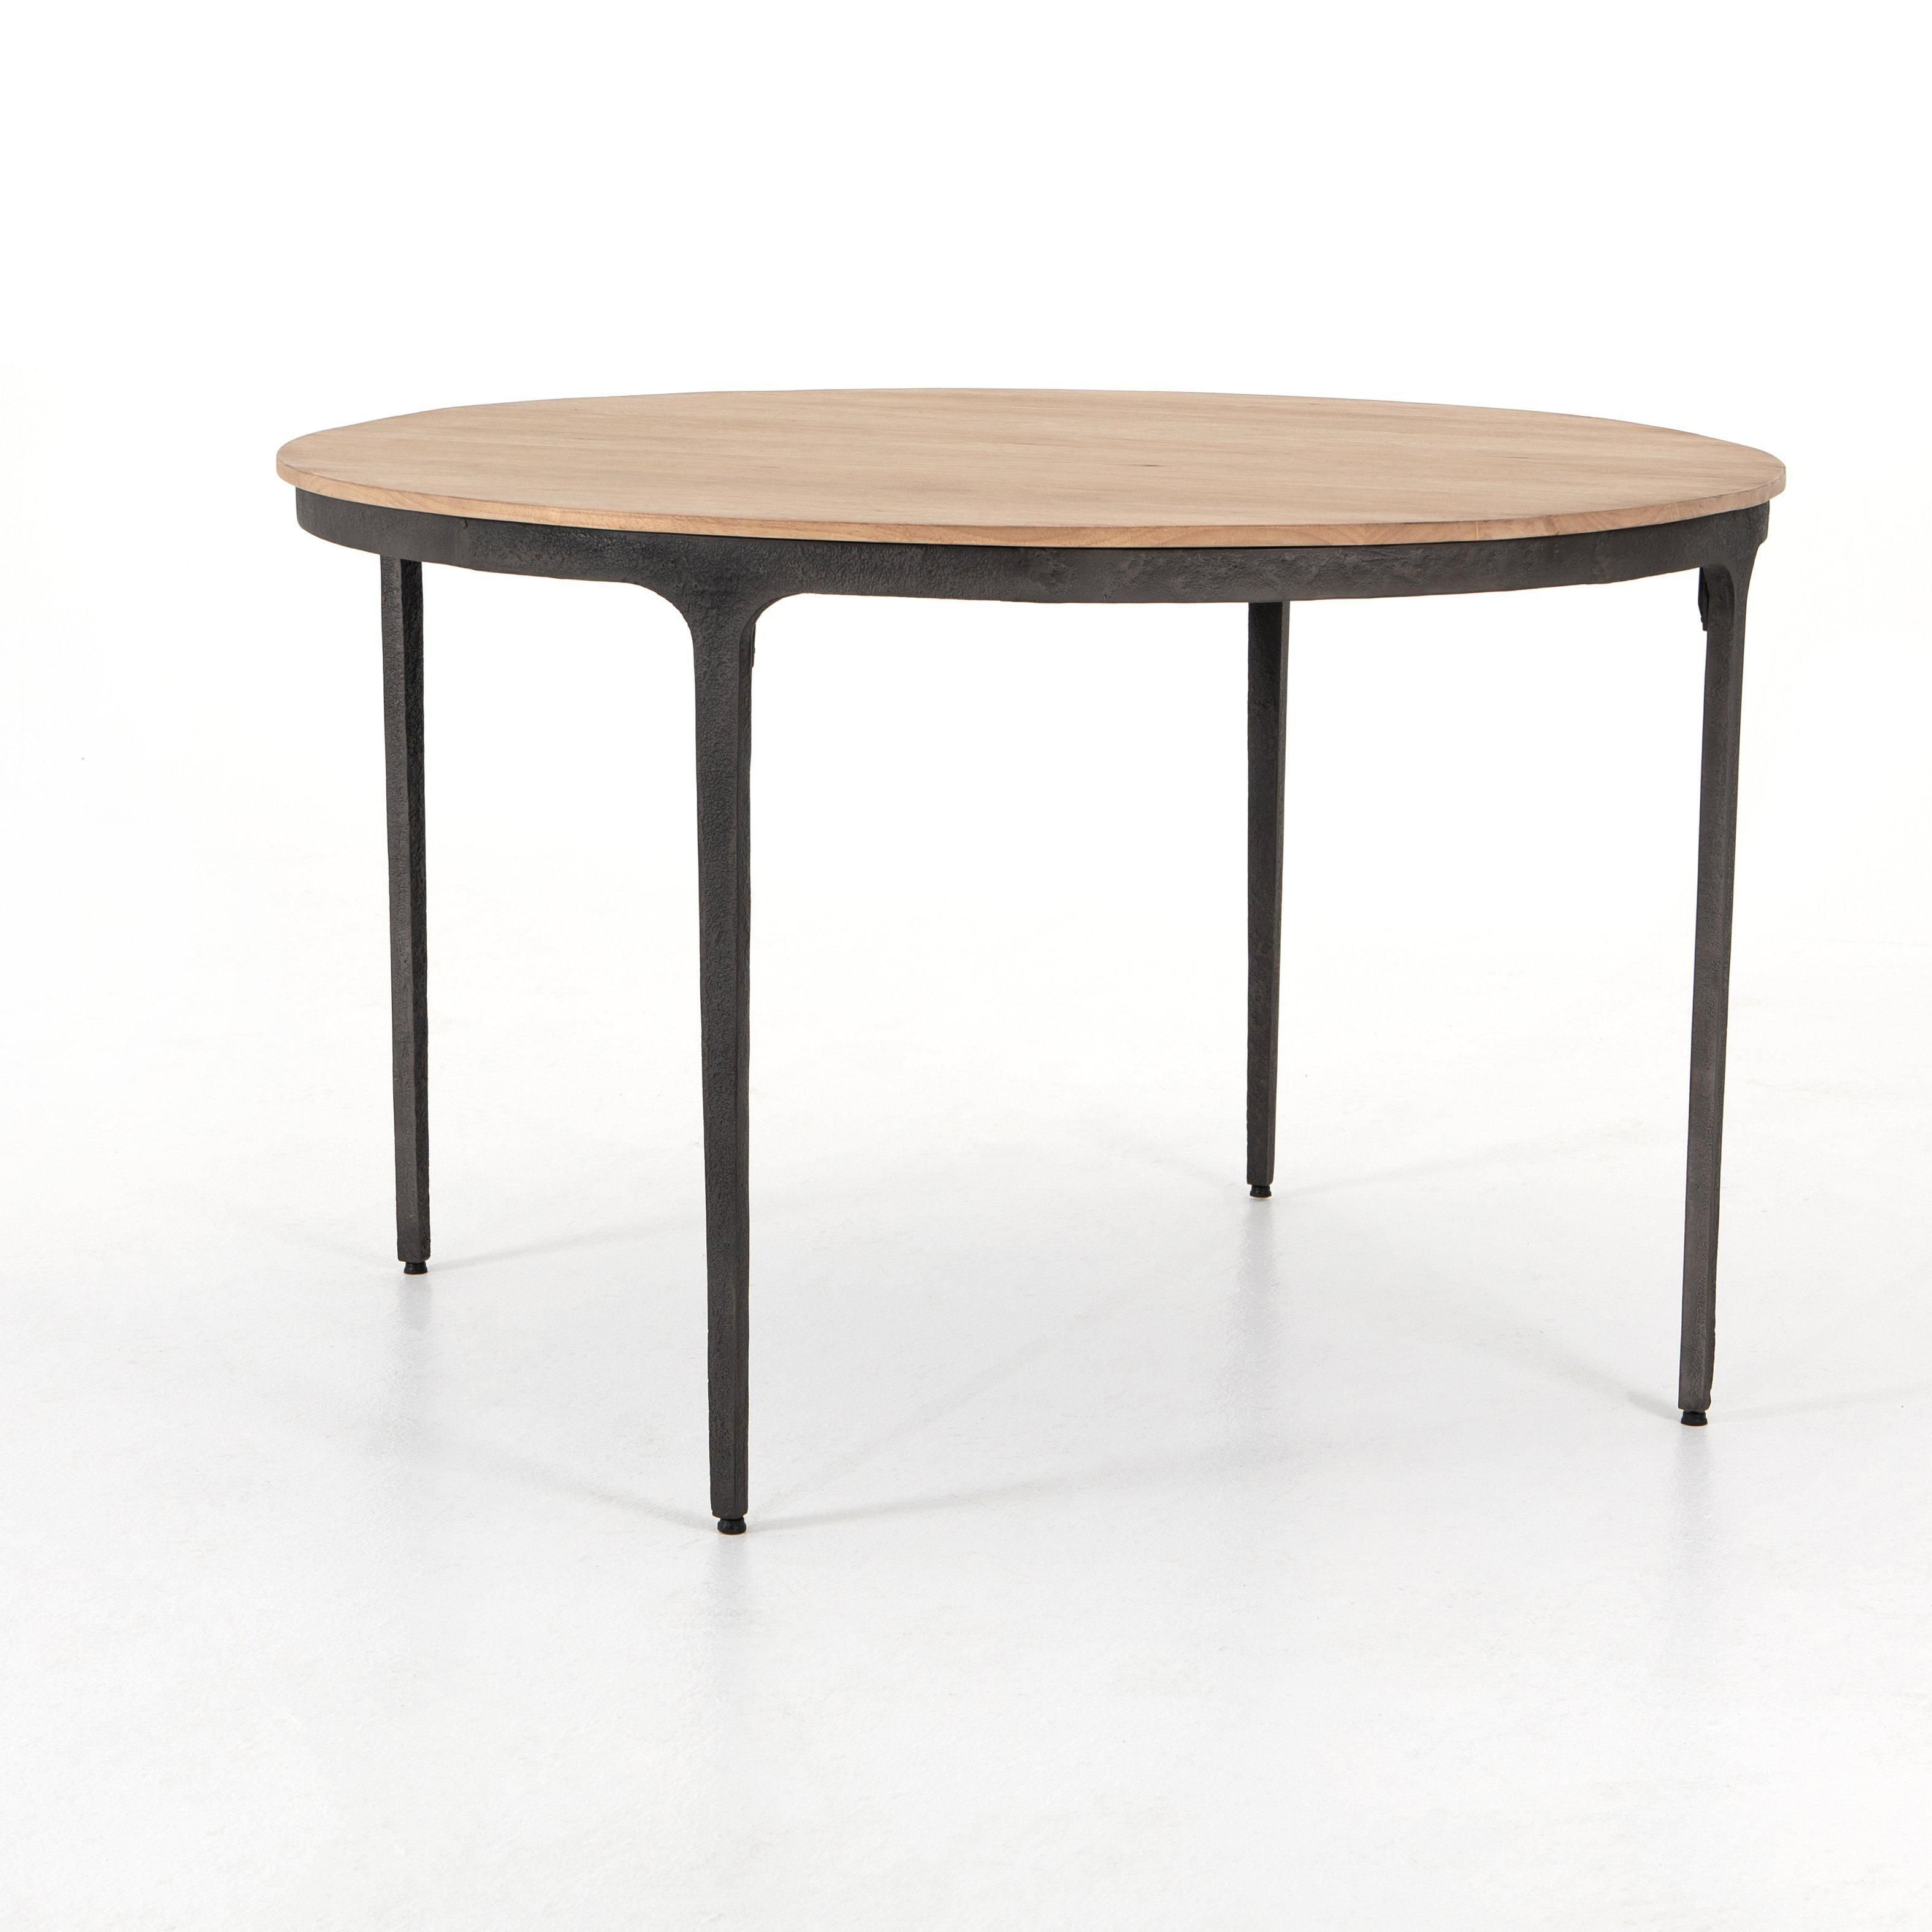 Clifton 48 In 2021 Round Dining Table 48 Round Dining Table Dining Table [ 3151 x 3151 Pixel ]